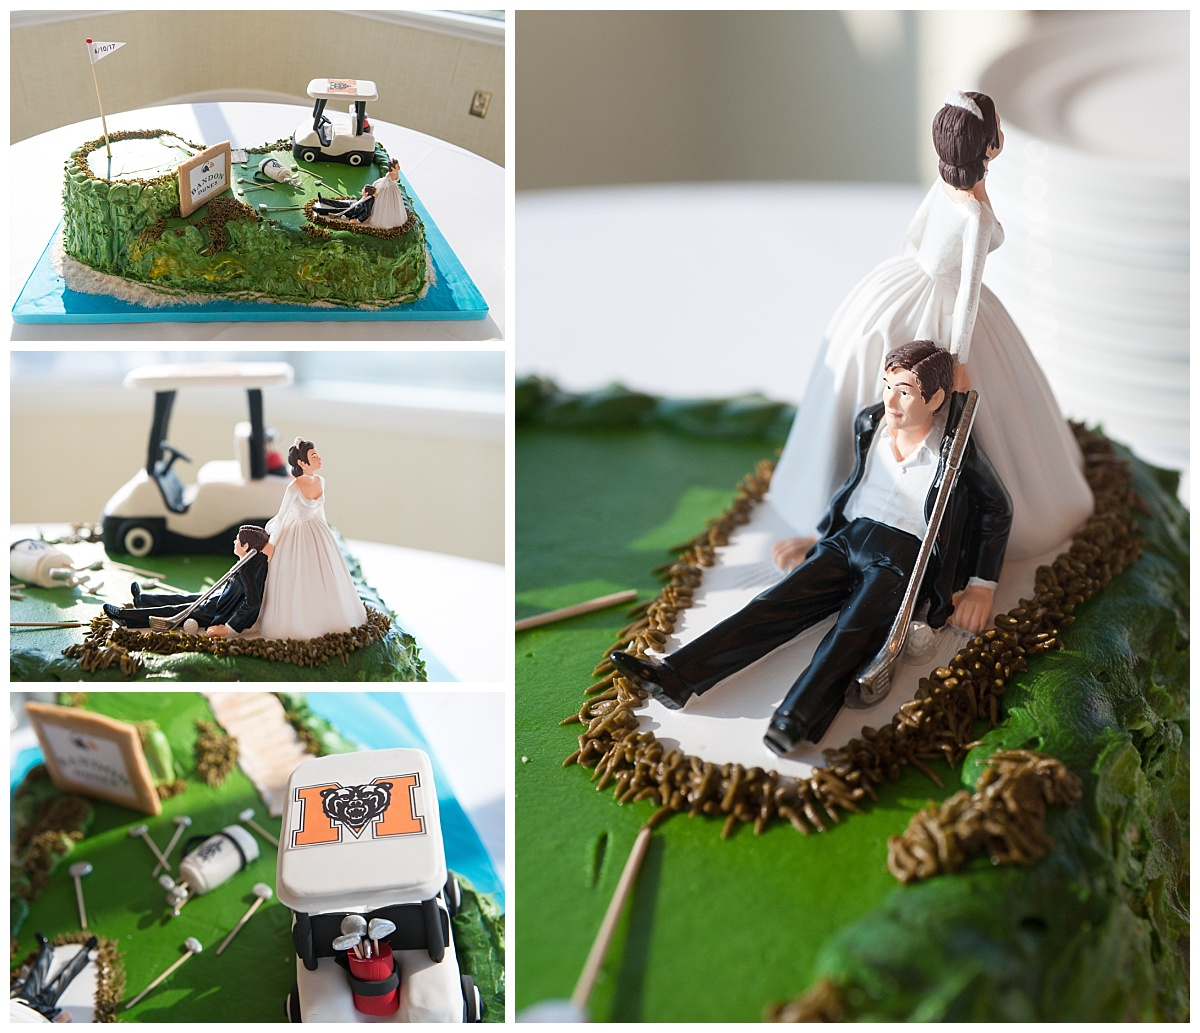 Custom grooms cake of golfer by Bonnie Brunt cakes